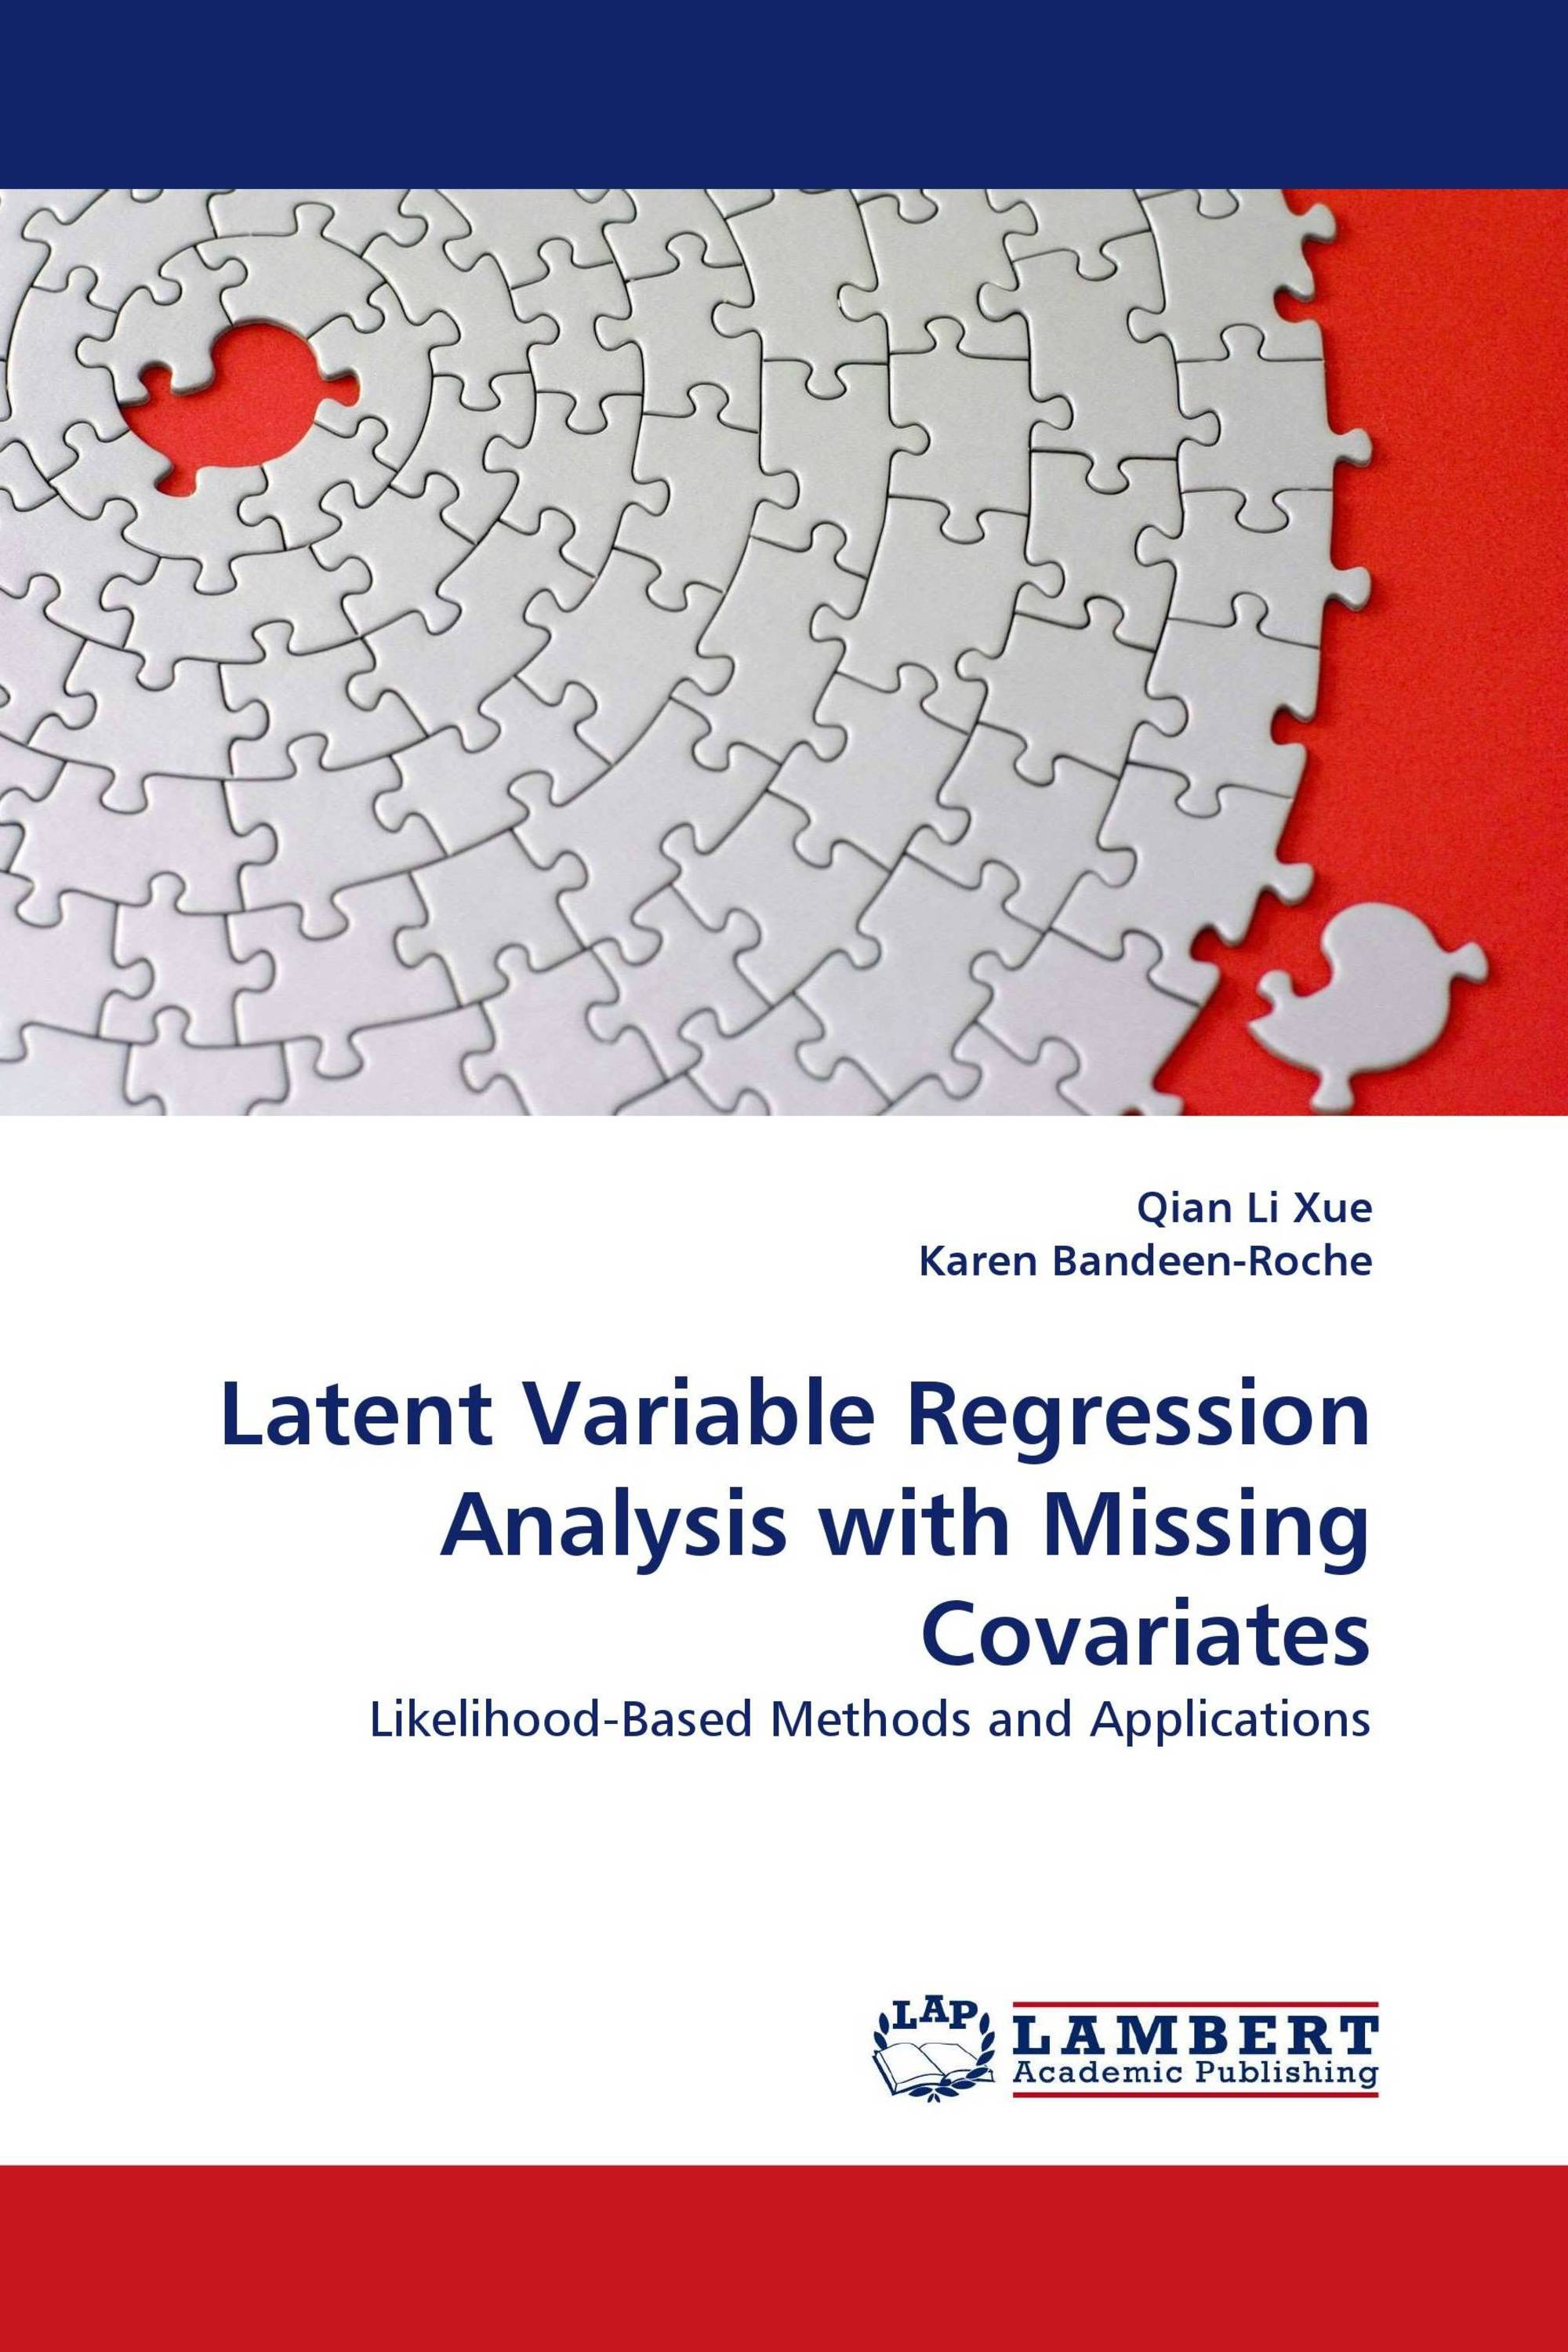 Latent Variable Regression Analysis with Missing Covariates